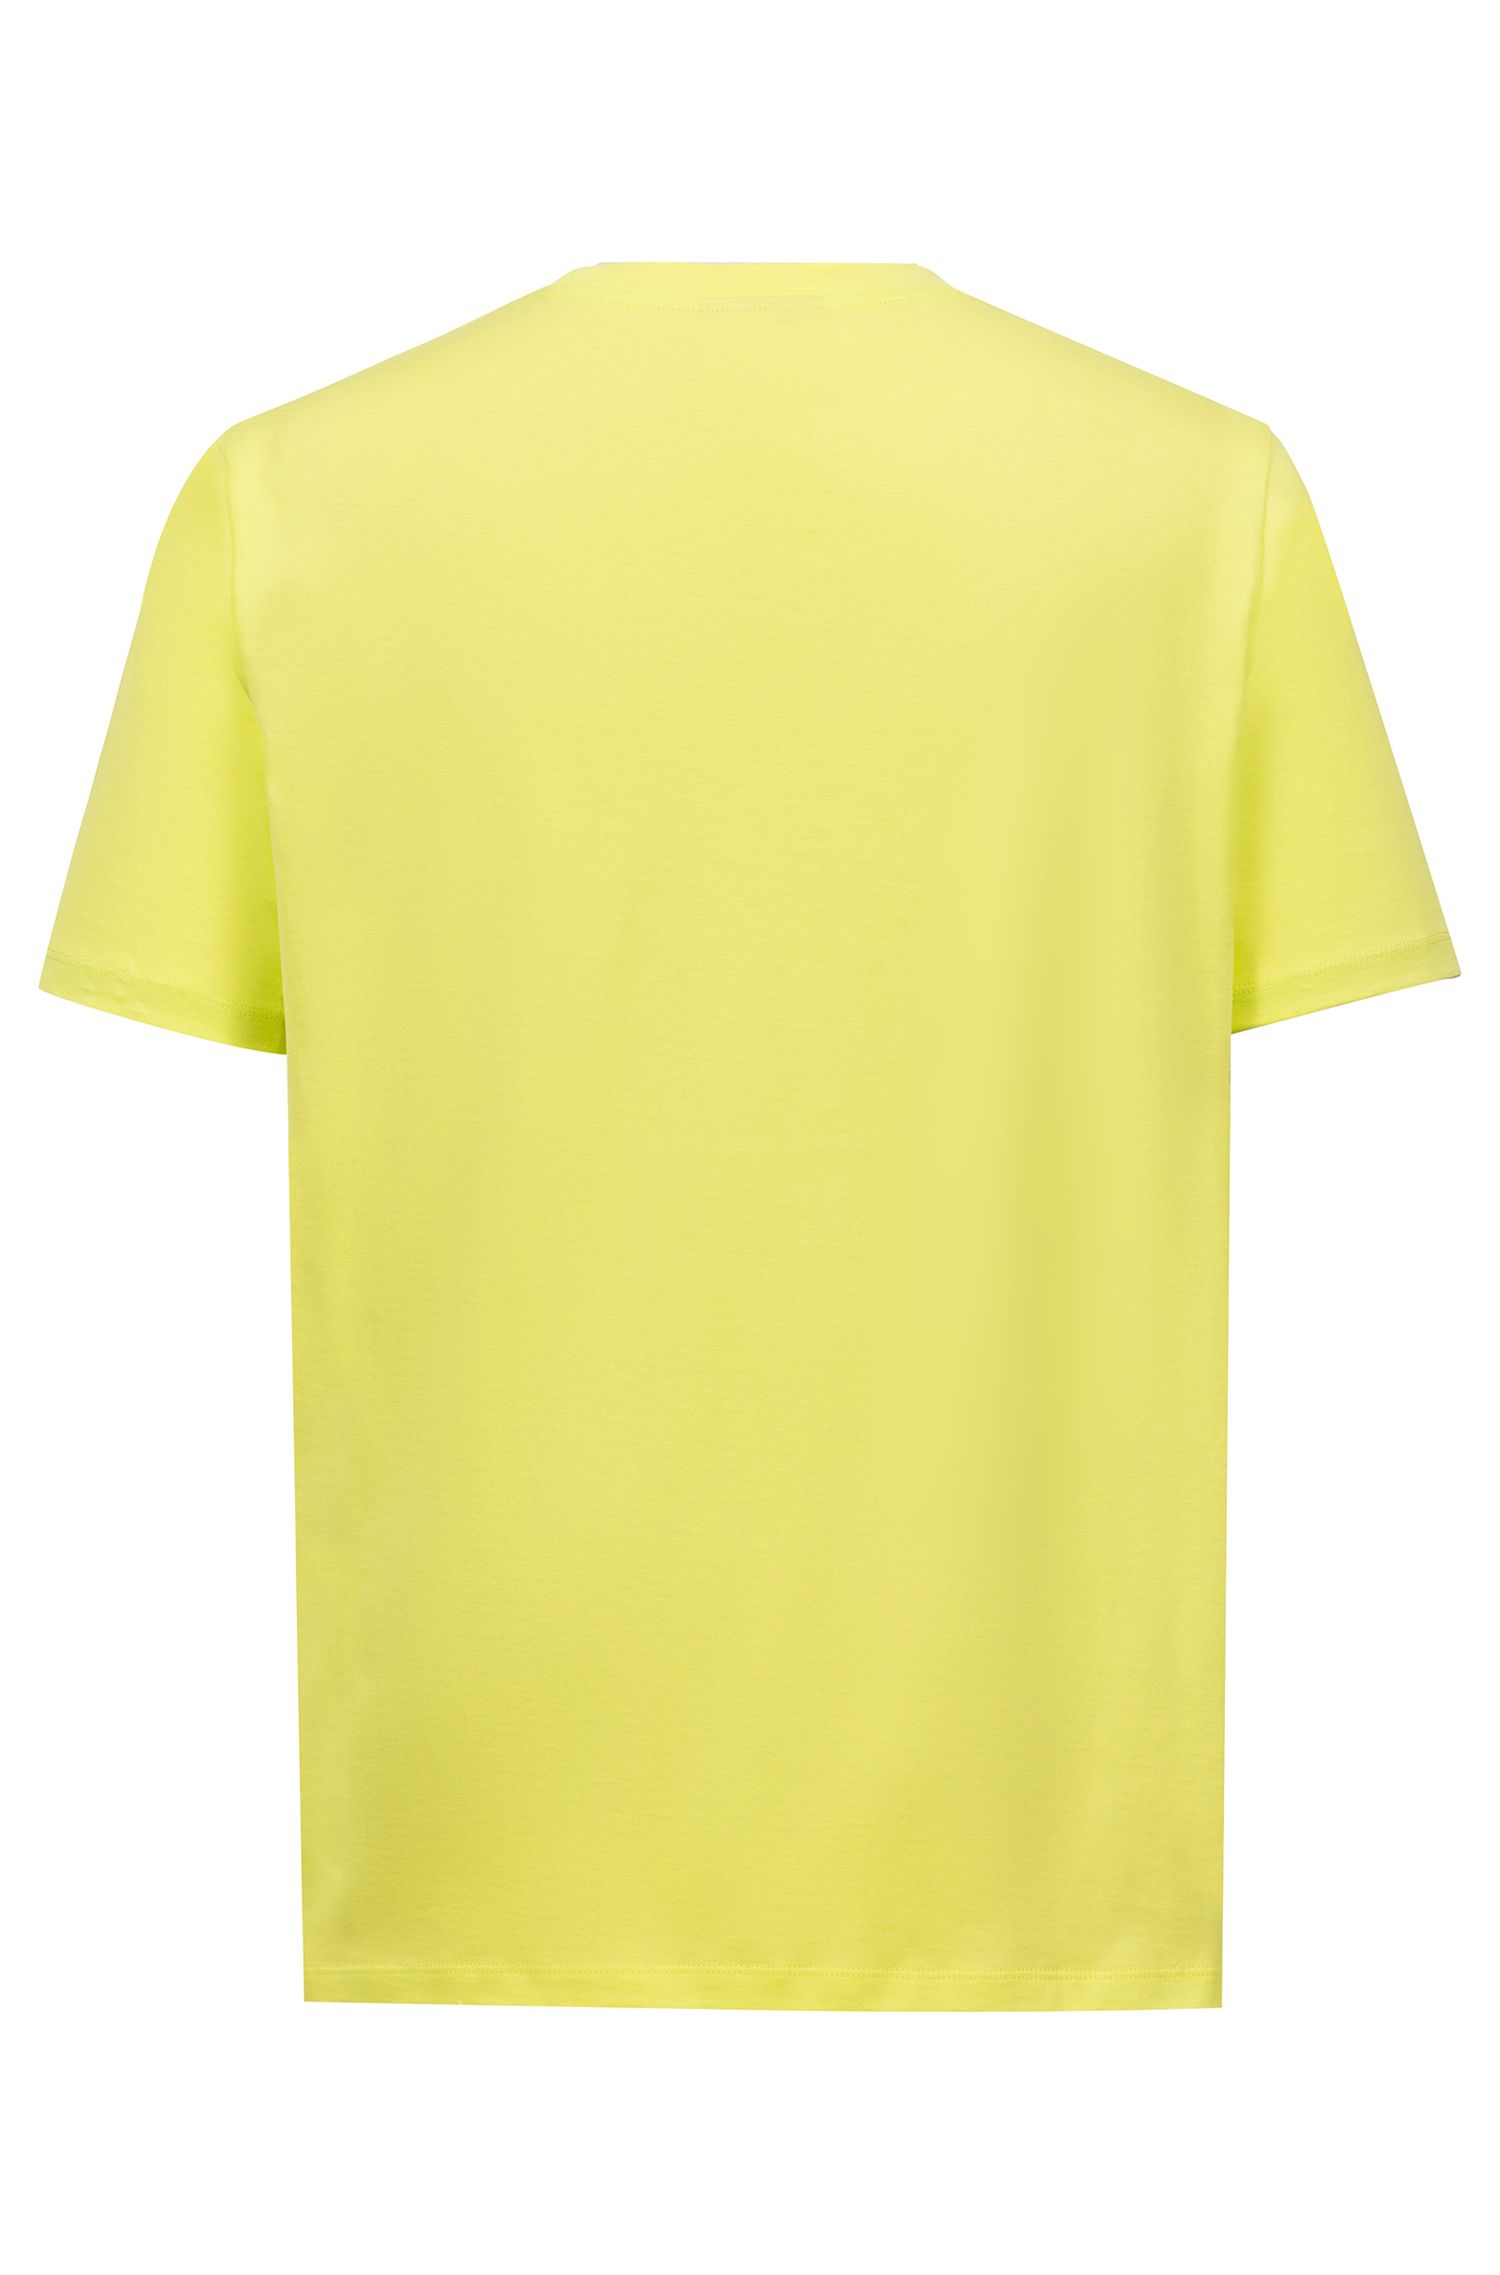 Crew-neck T-shirt in cotton with reverse-logo print, Yellow